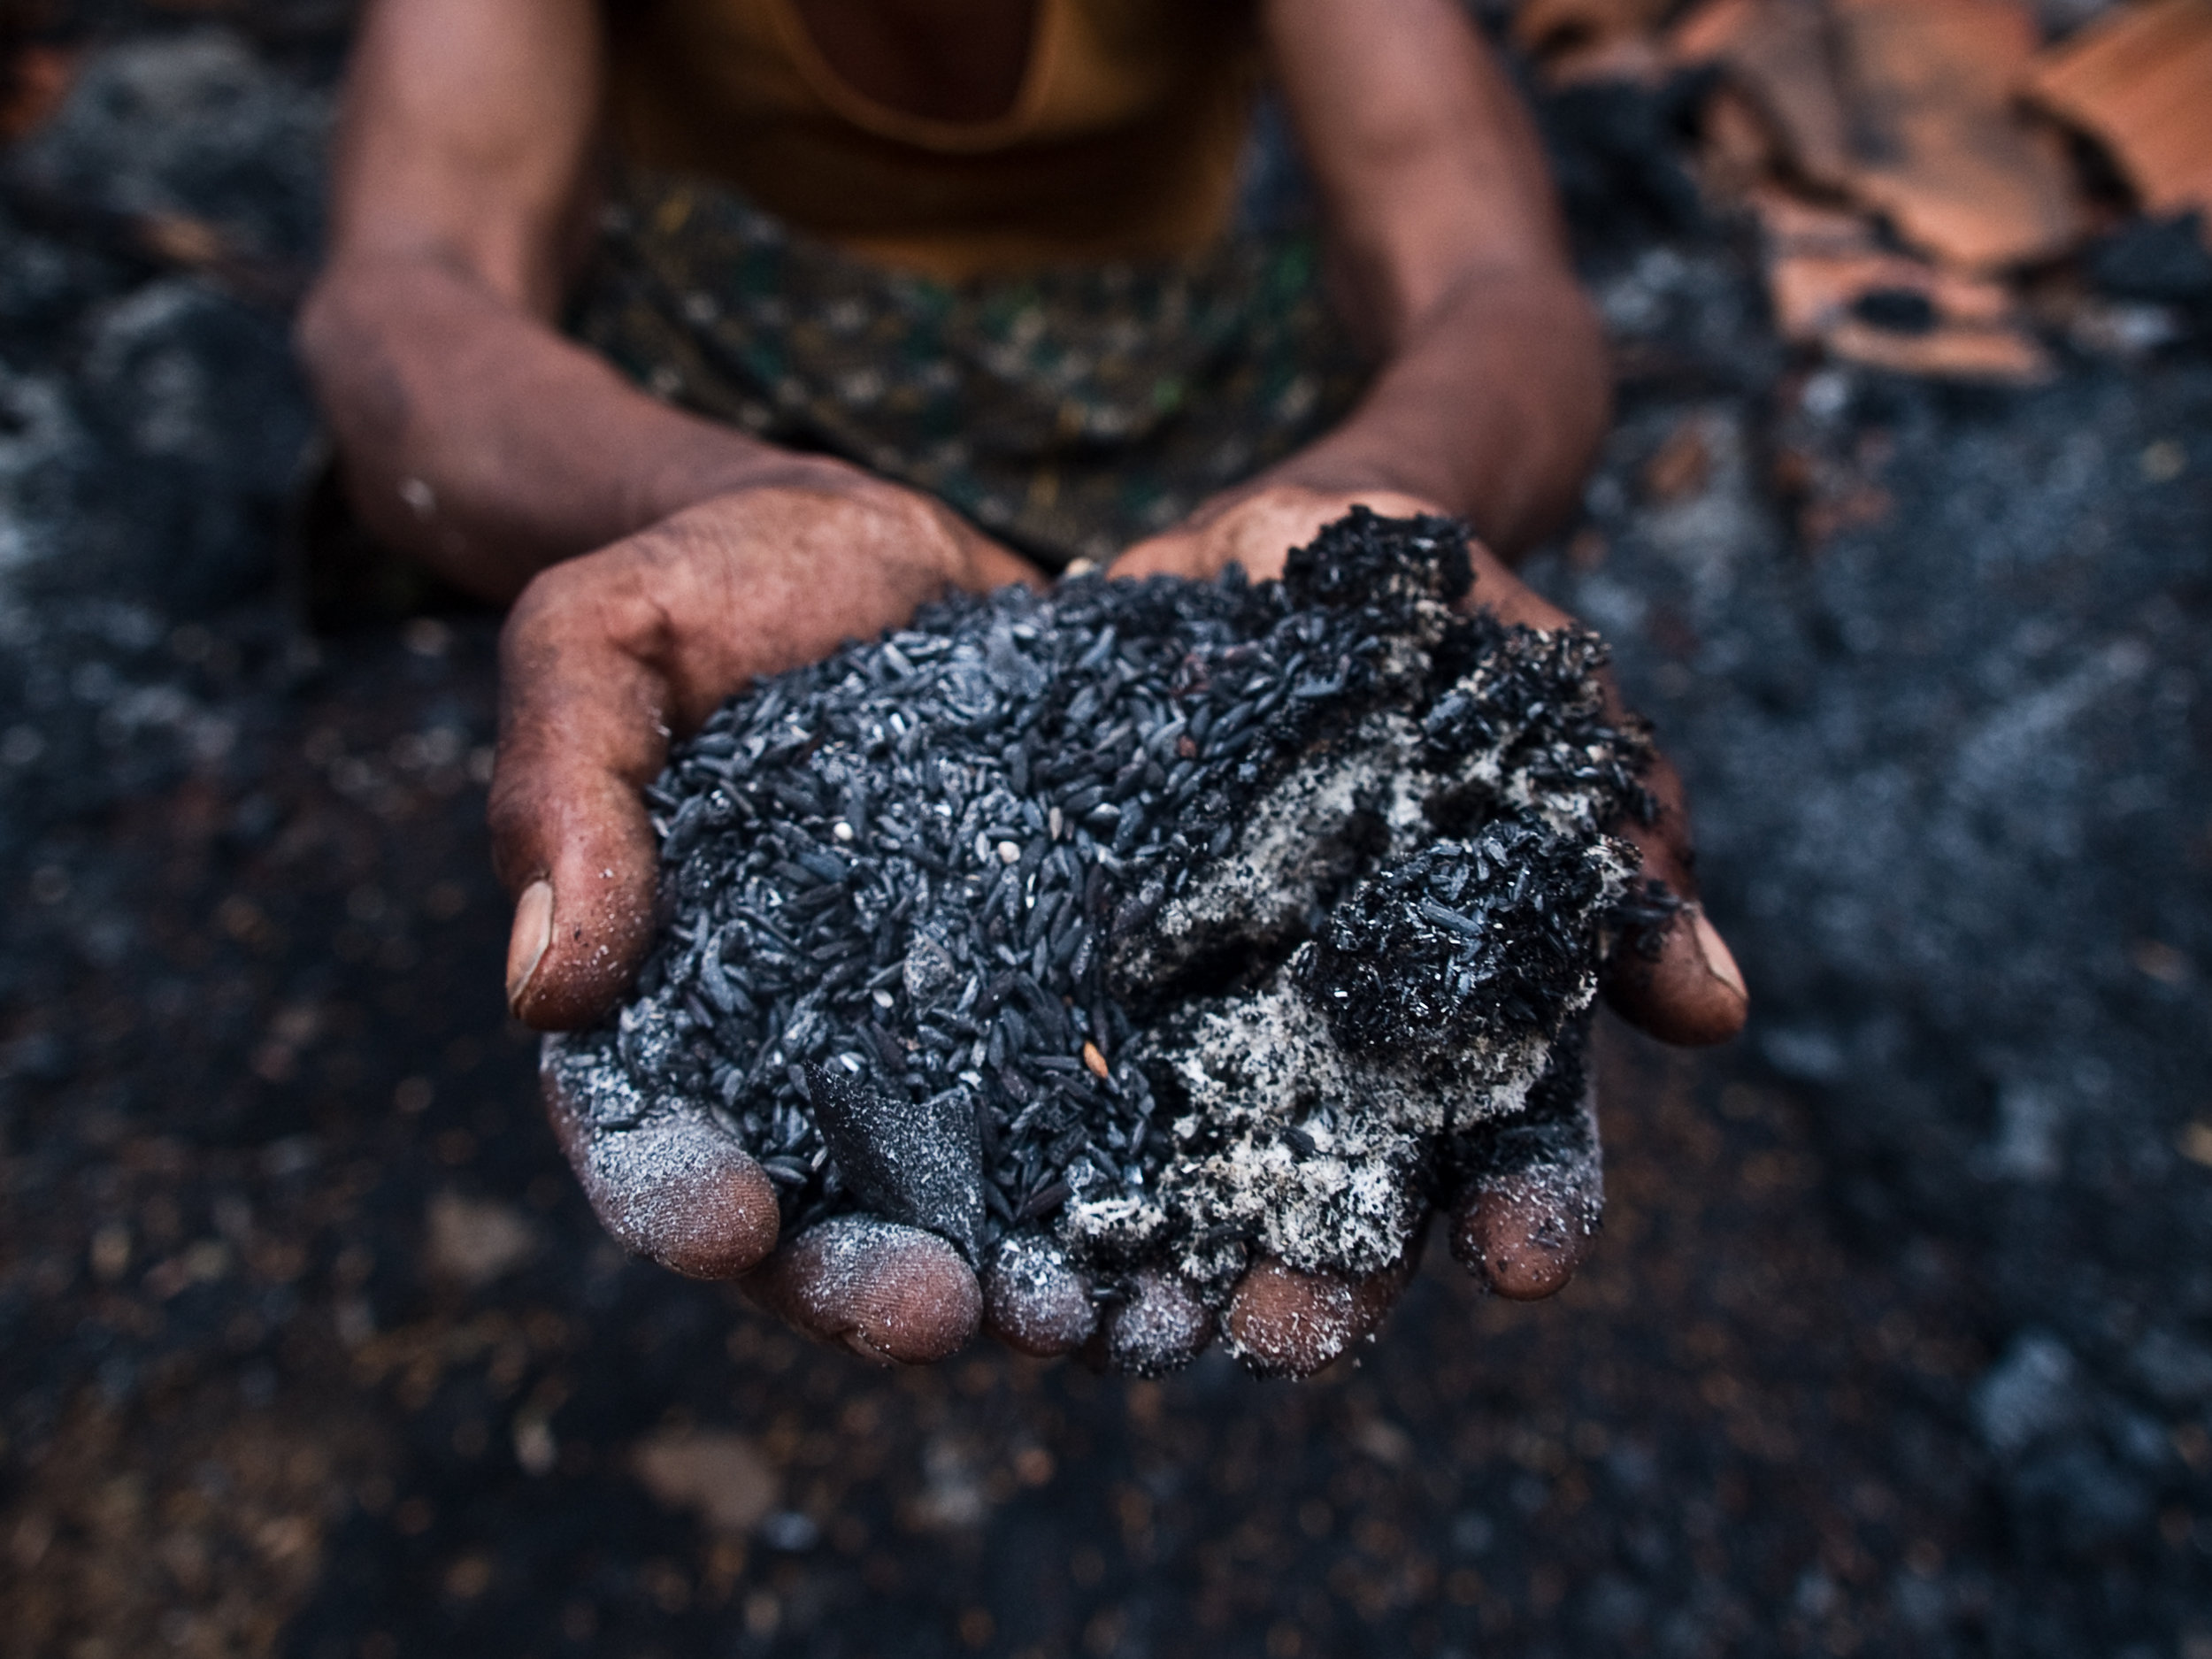 Z10iii Adivasis who were beaten by the police and whose villages were burnt 3.jpg